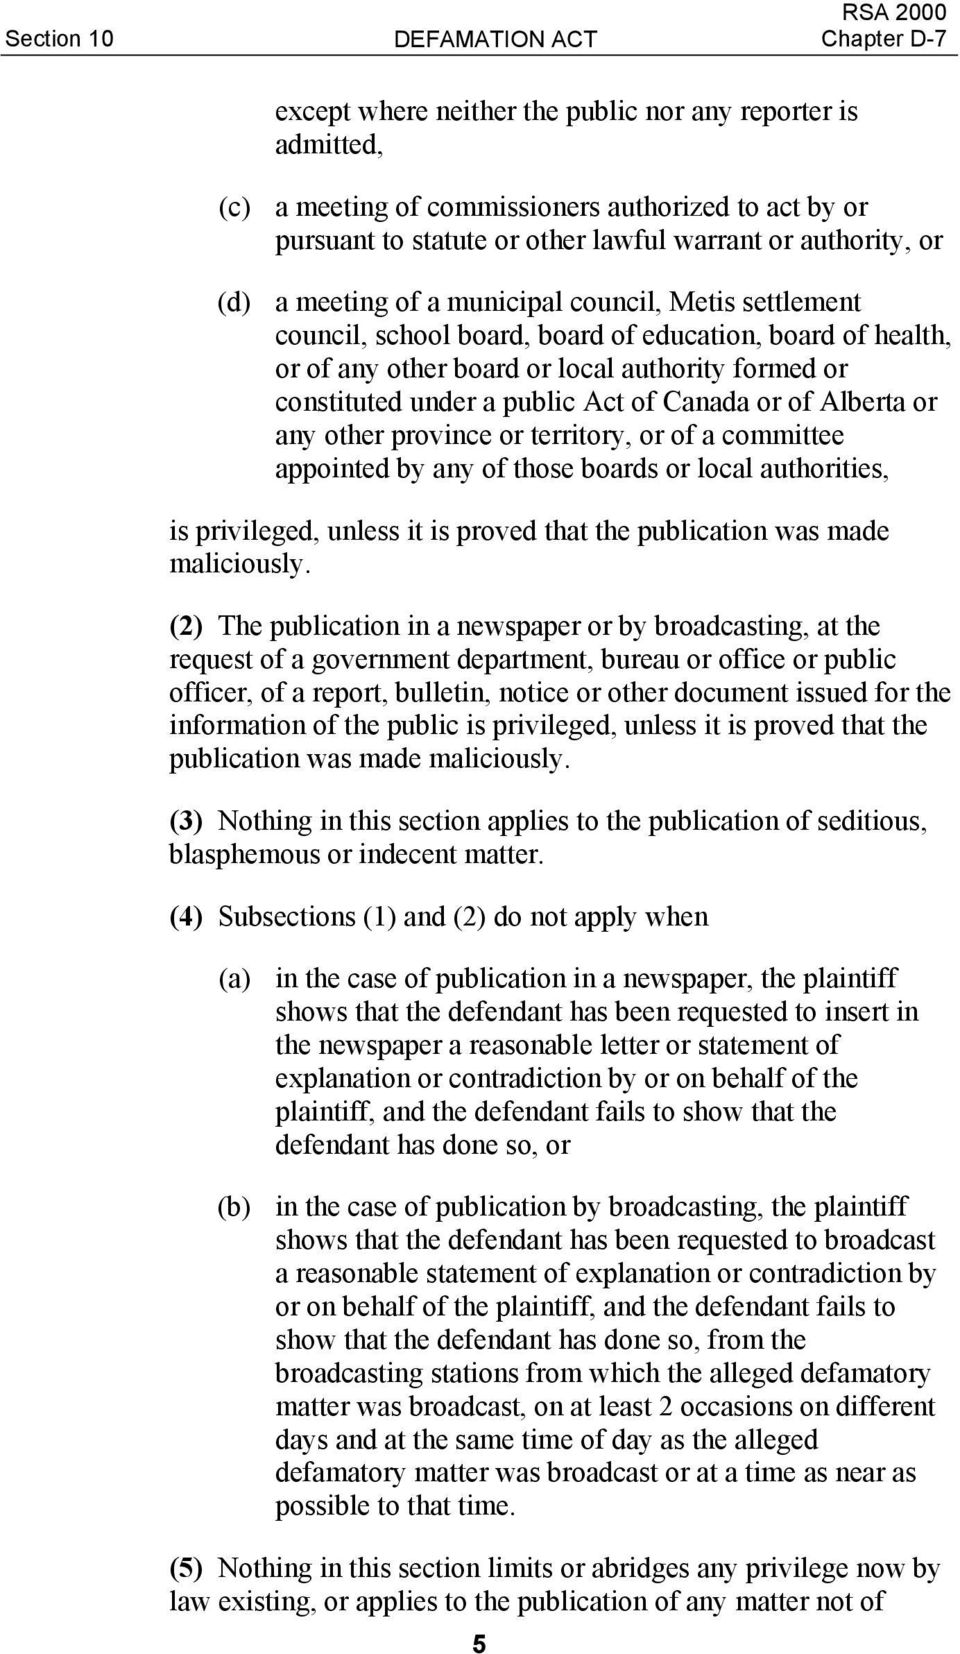 public Act of Canada or of Alberta or any other province or territory, or of a committee appointed by any of those boards or local authorities, is privileged, unless it is proved that the publication